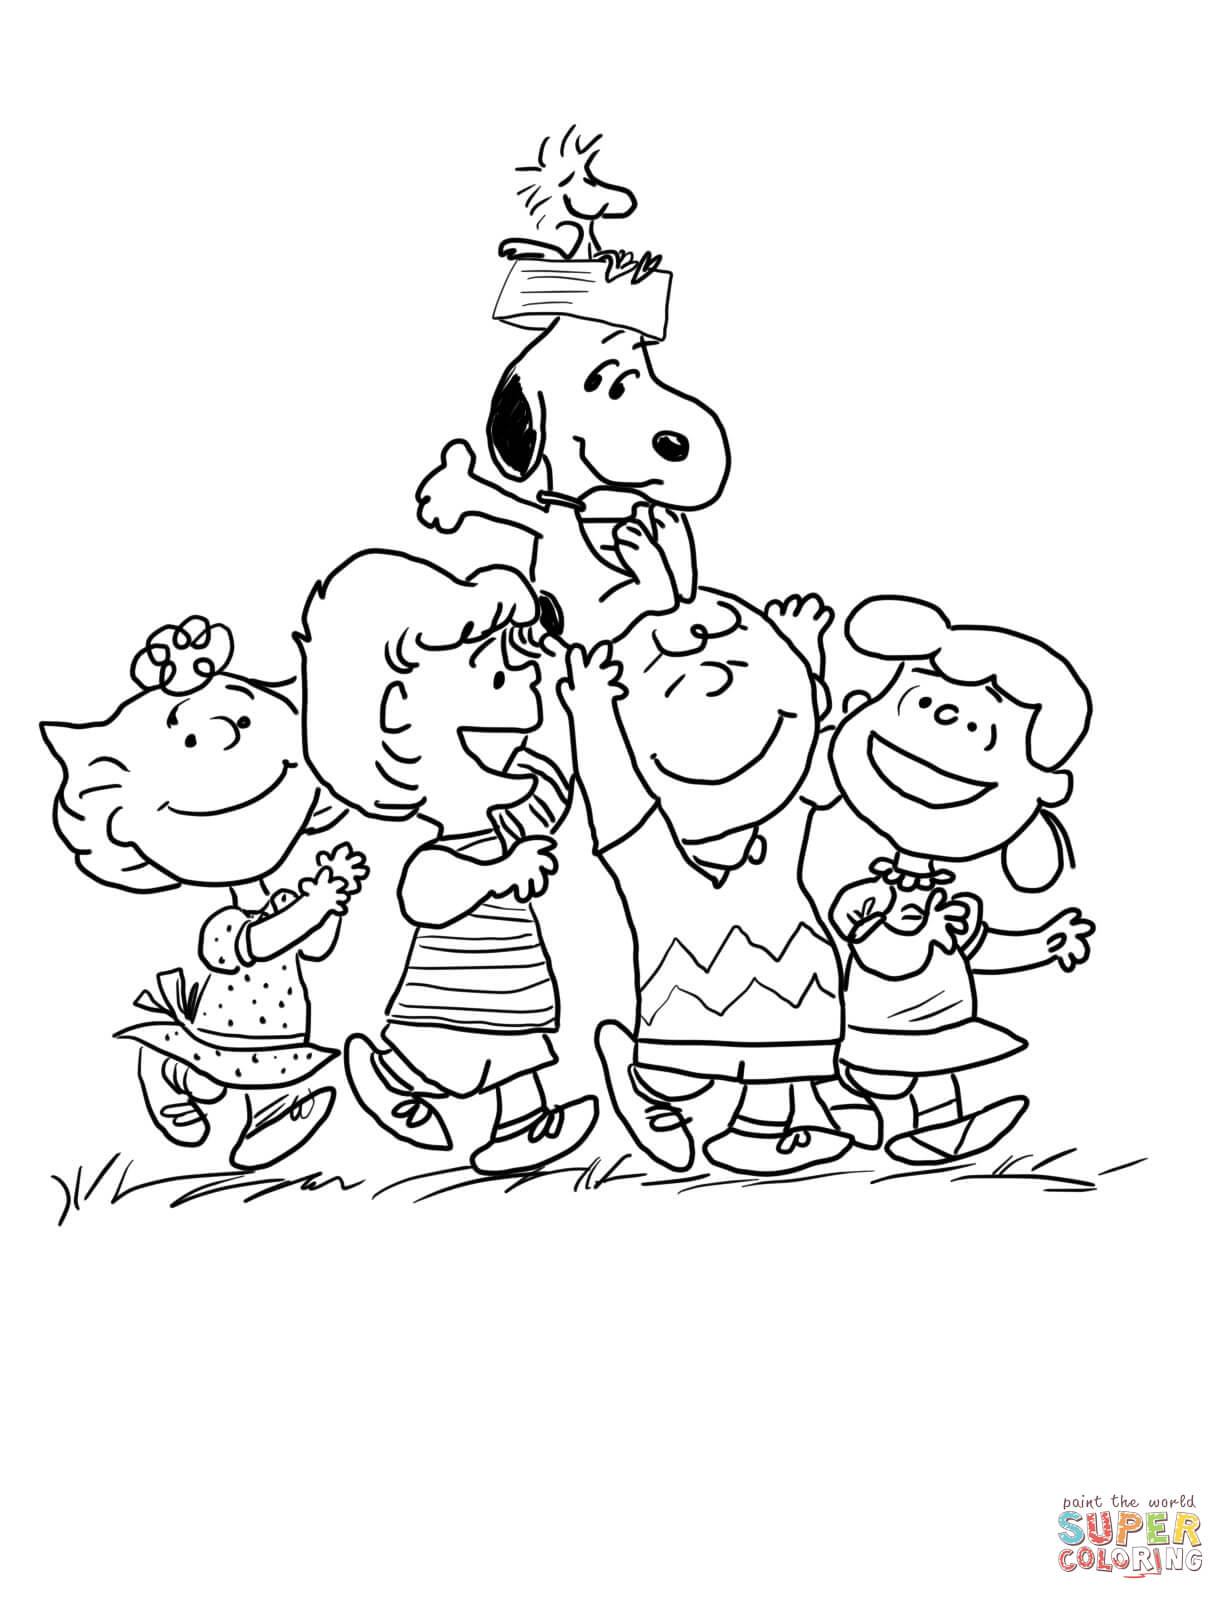 1226x1600 Peanuts Gang Coloring Page Free Printable Pages